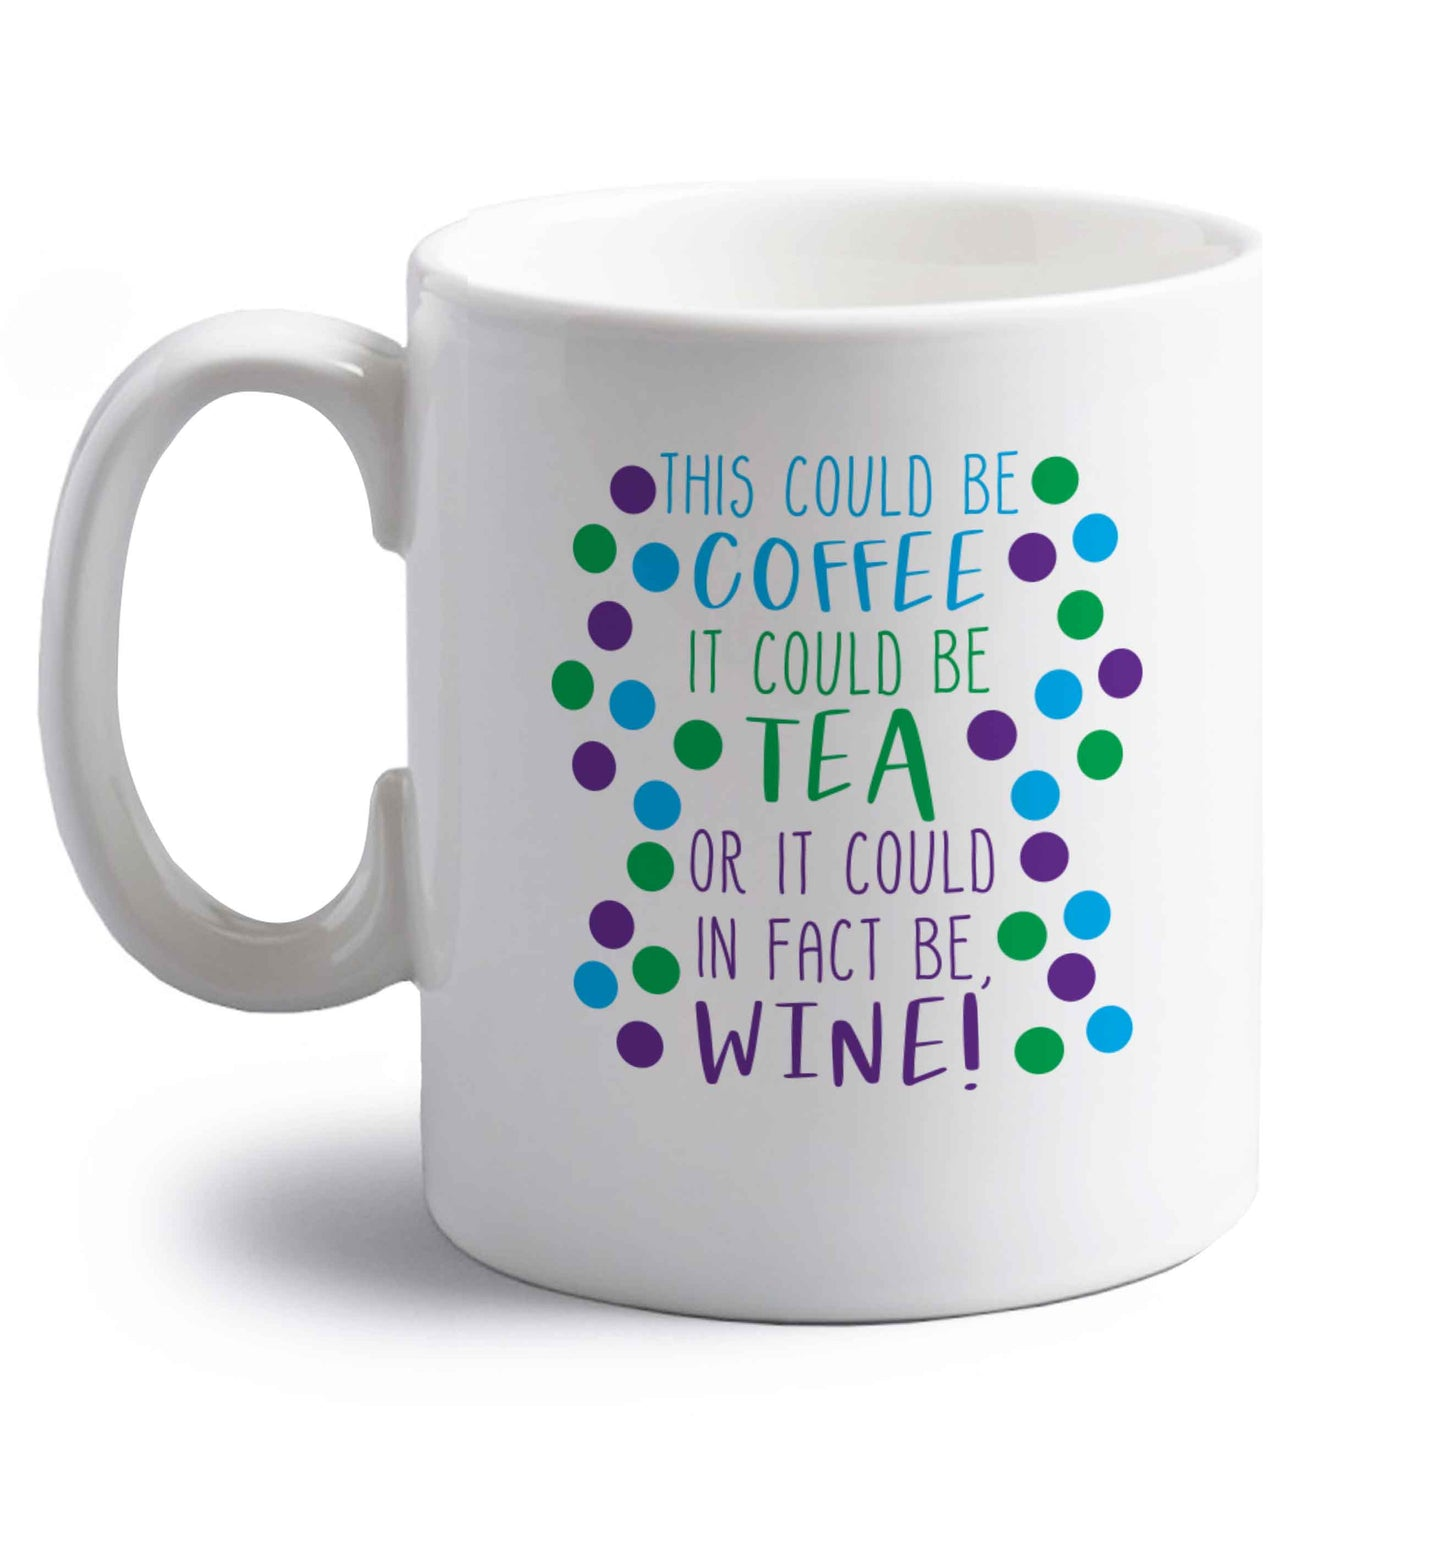 This could be tea, it could be coffee, or it could in fact be wine right handed white ceramic mug